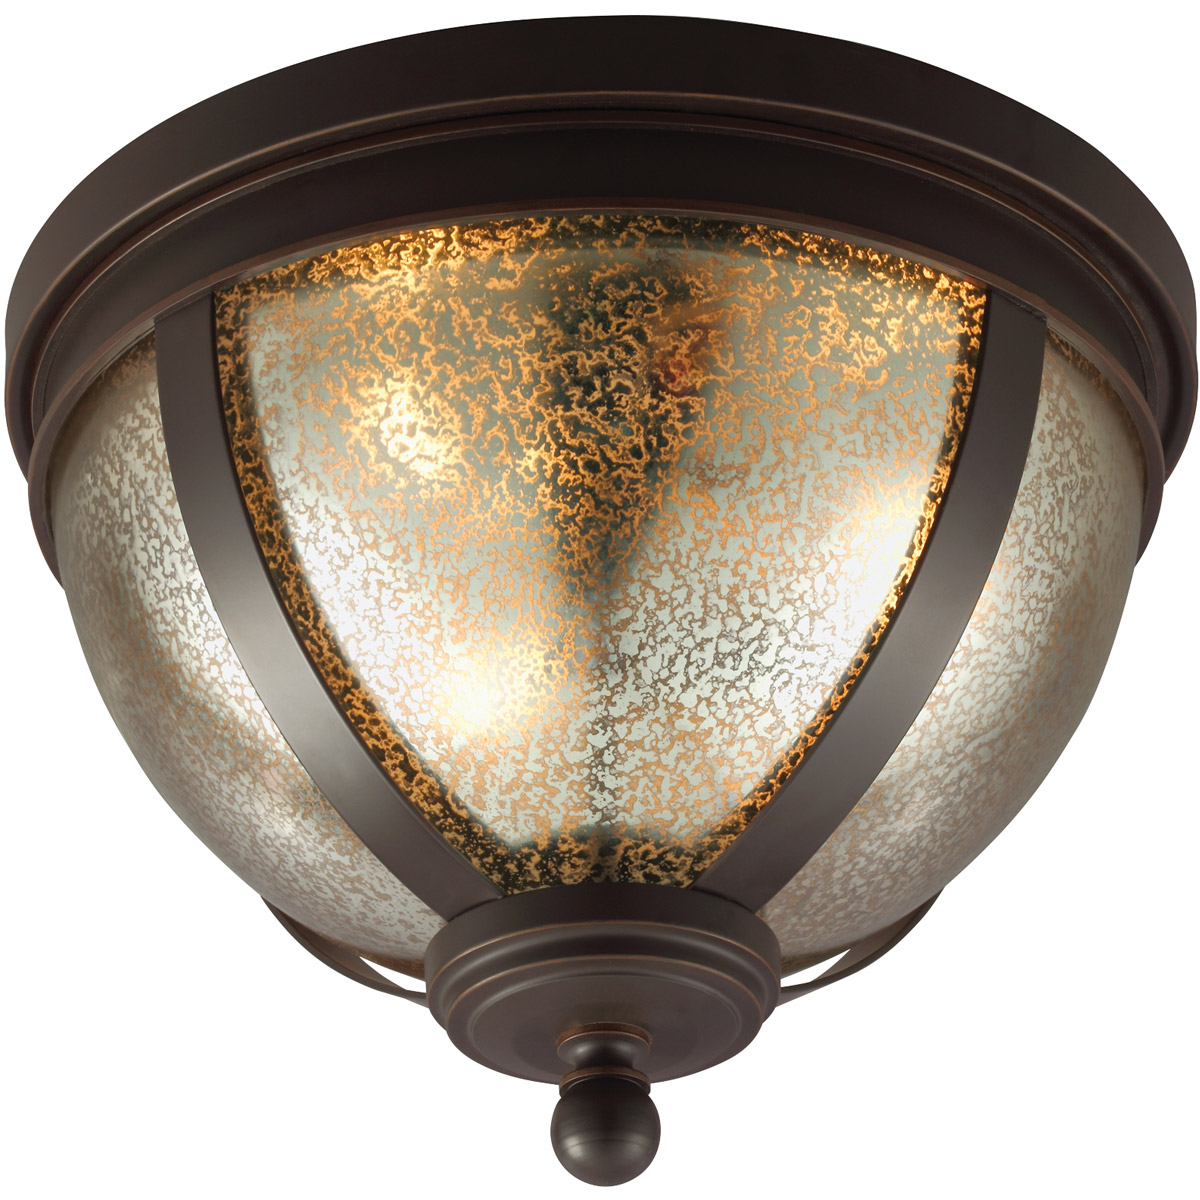 Sea Gull Sfera 3 Light Flush Mount in Autumn Bronze 7510403-715 photo